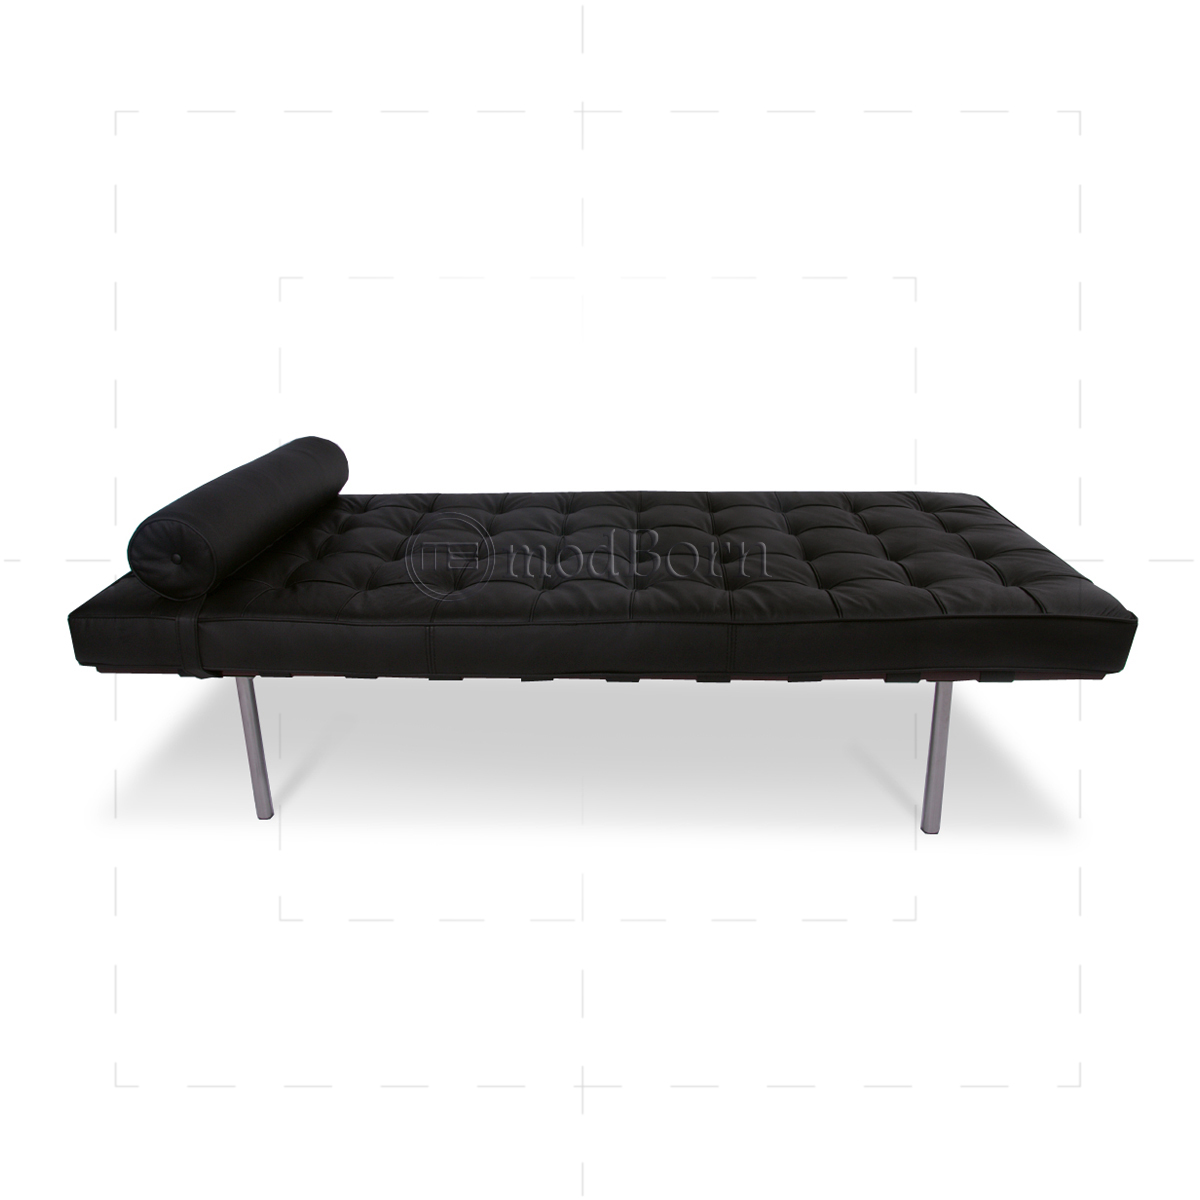 Ludwig mies van der rohe barcelona style day bed black for Mies van der rohe replica